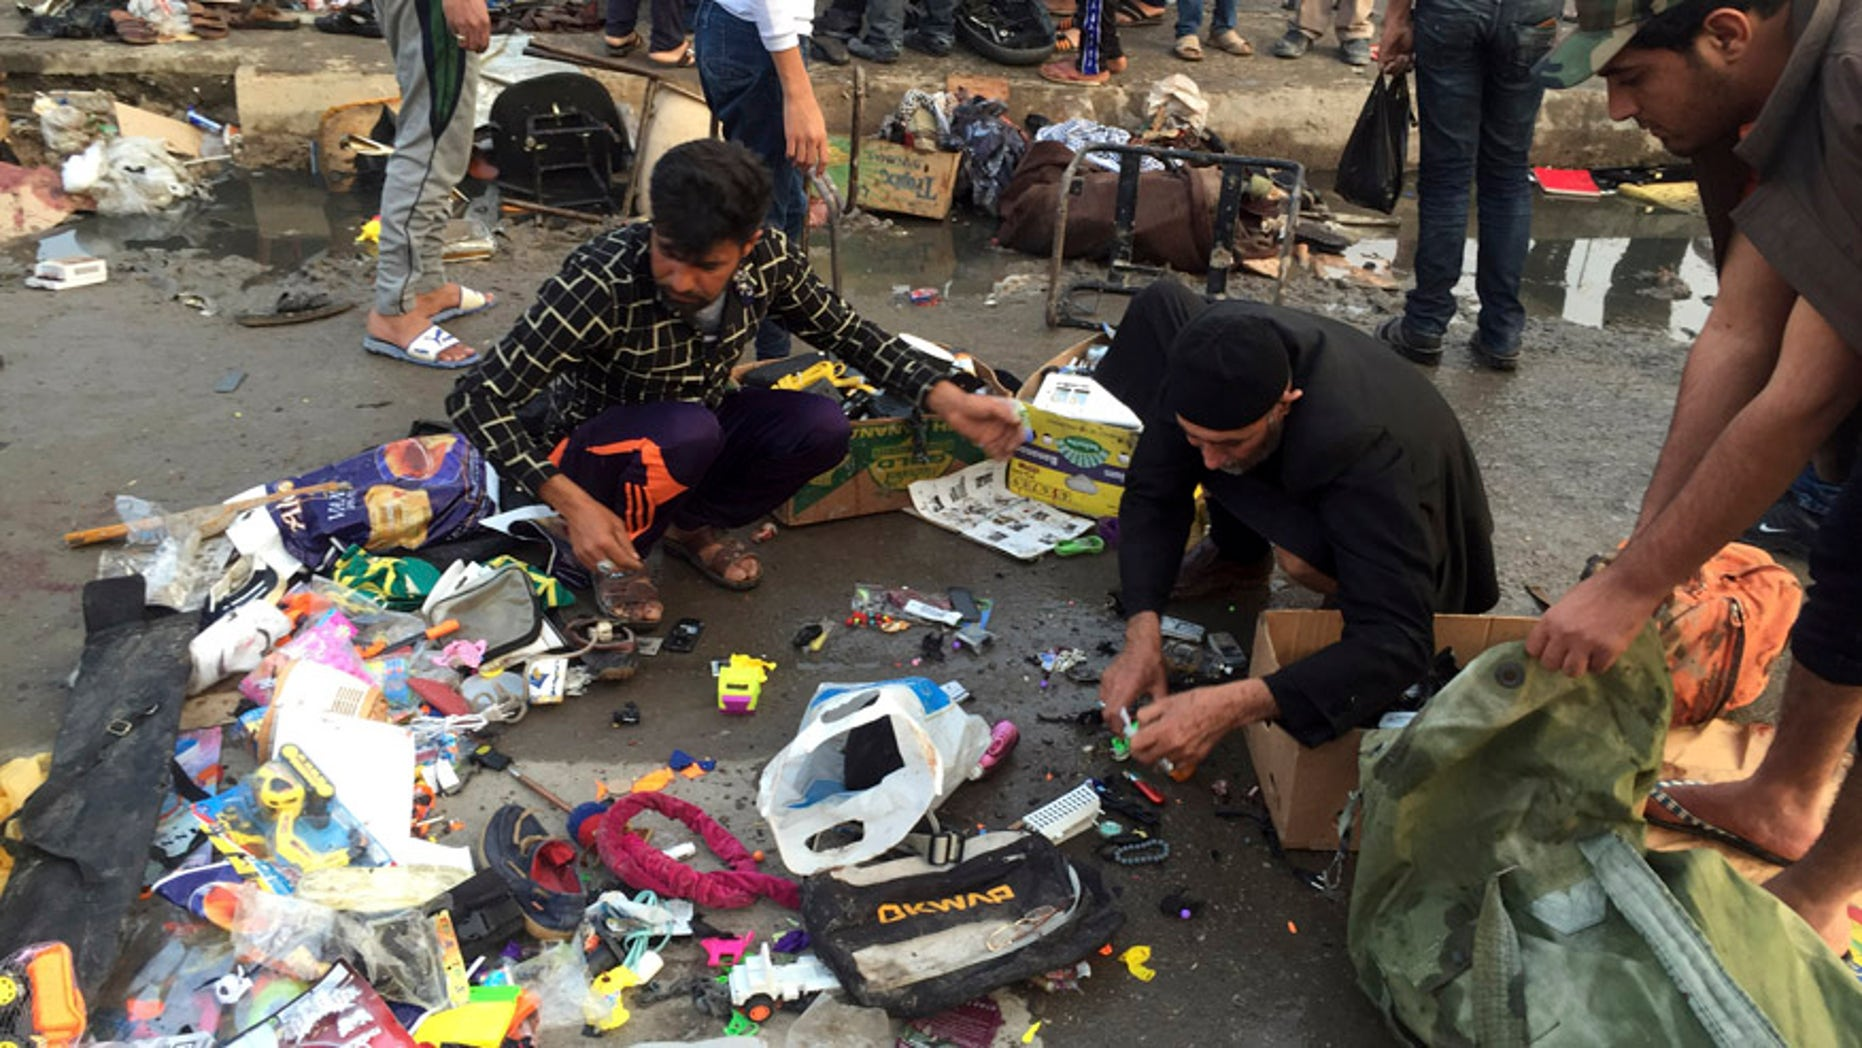 Feb. 28, 2016: Street vendors collect their belongings after deadly bombing attacks in Sadr City, Baghdad, Iraq.